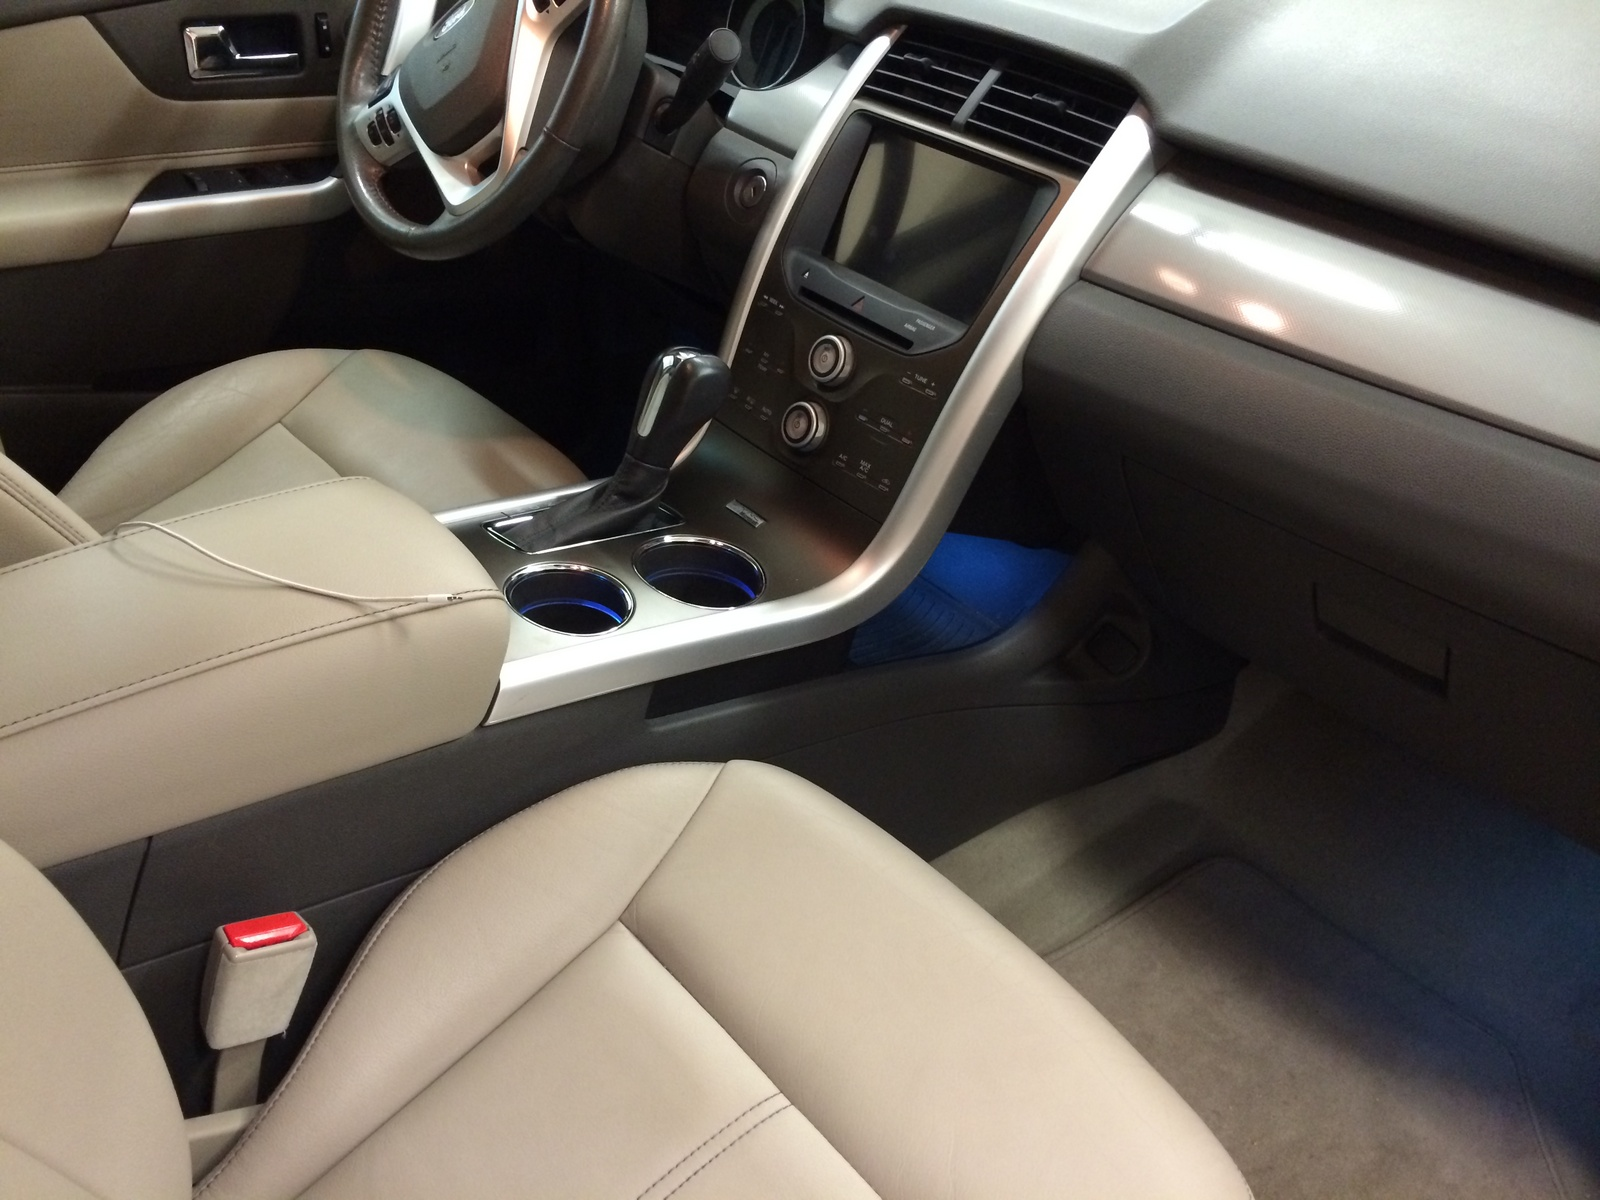 2007 Ford Edge Sel >> 2011 Ford Edge - Pictures - CarGurus